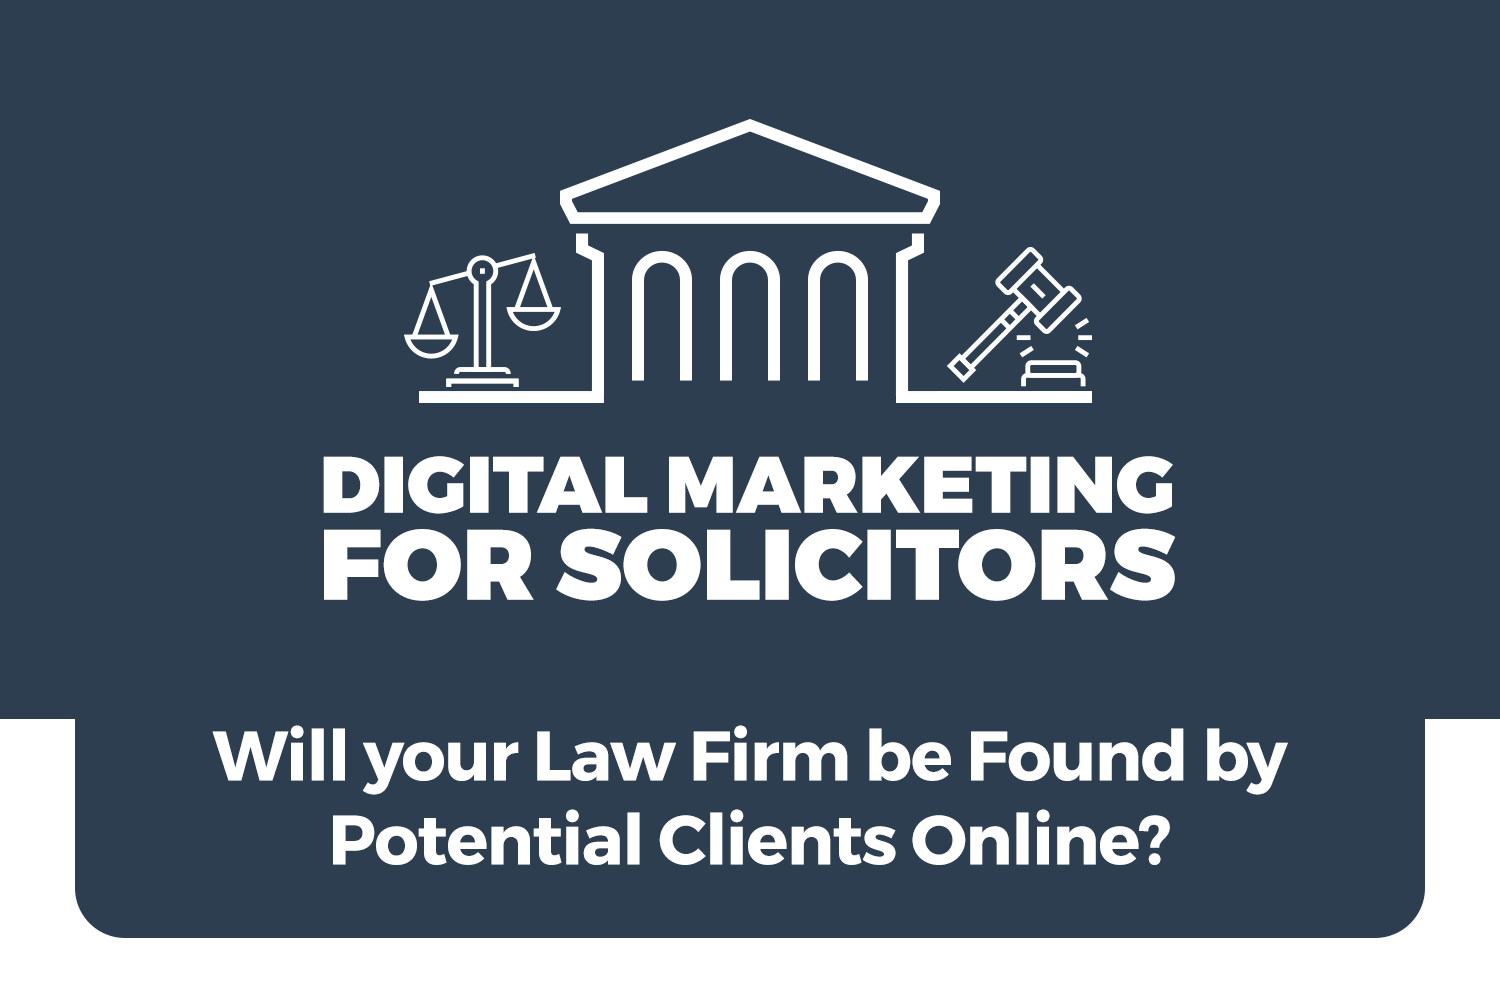 Digital Marketing for Solicitors Infographic Featured Image